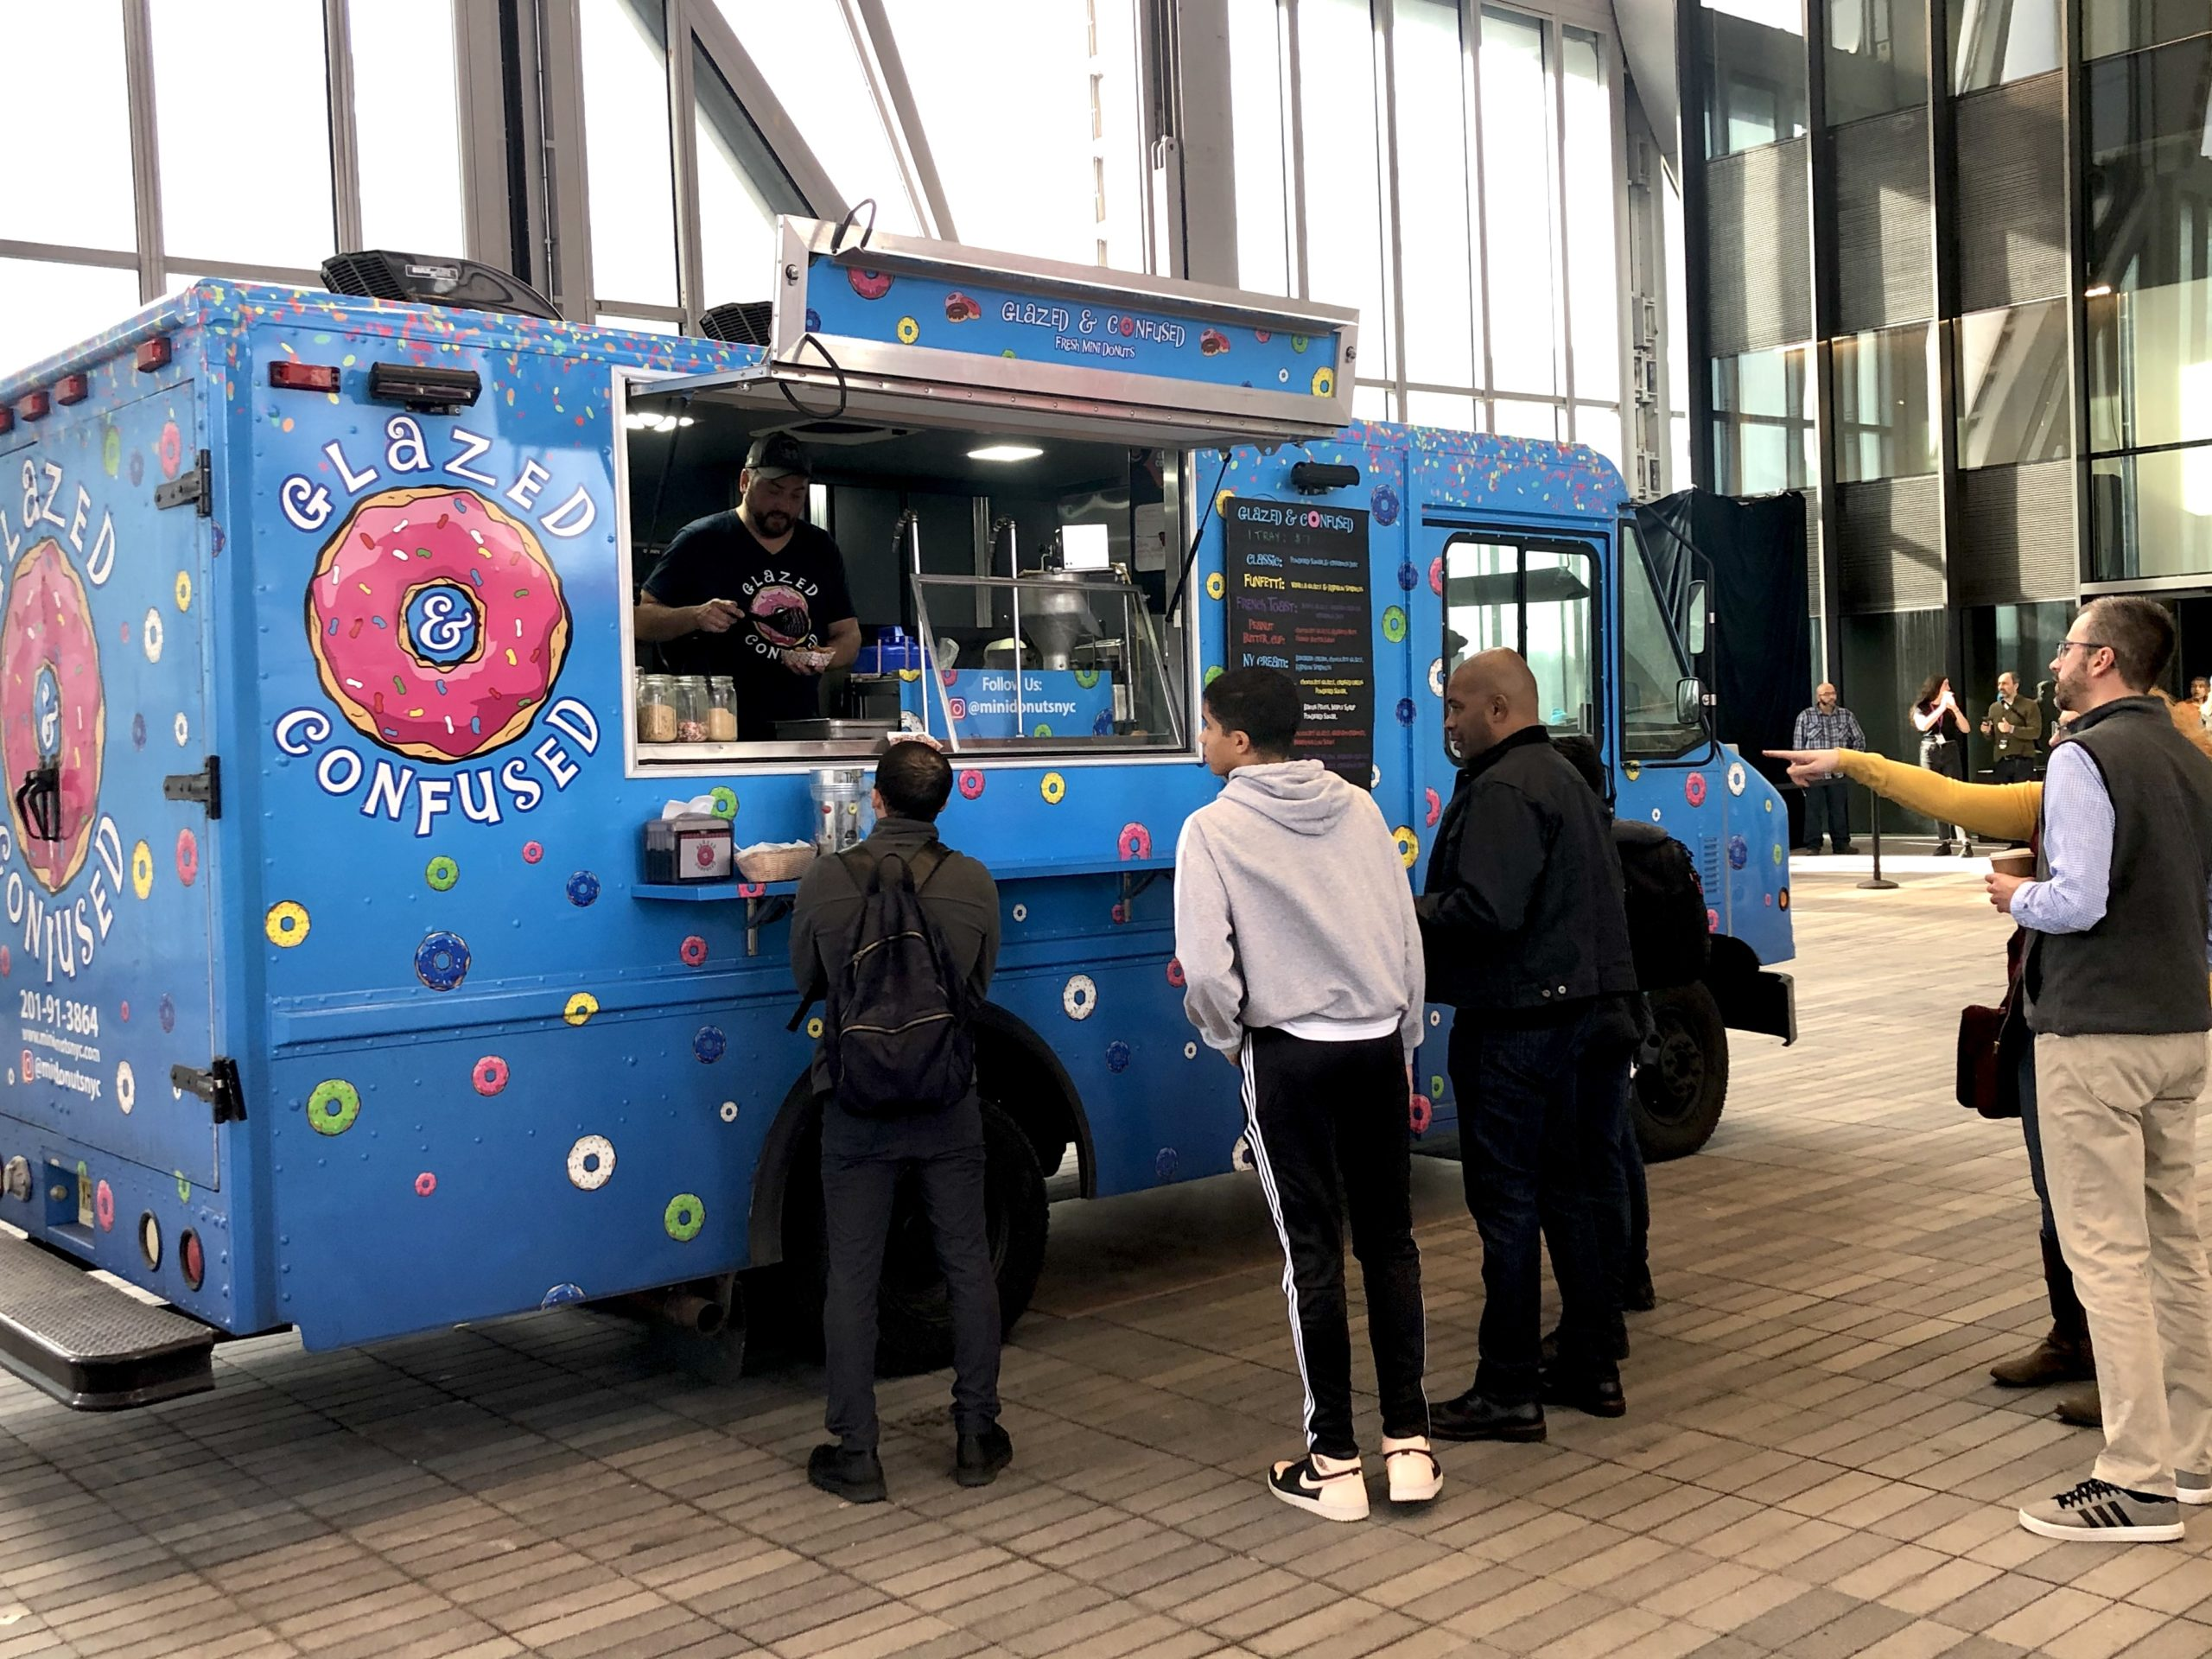 Rent a donut food truck in nyc